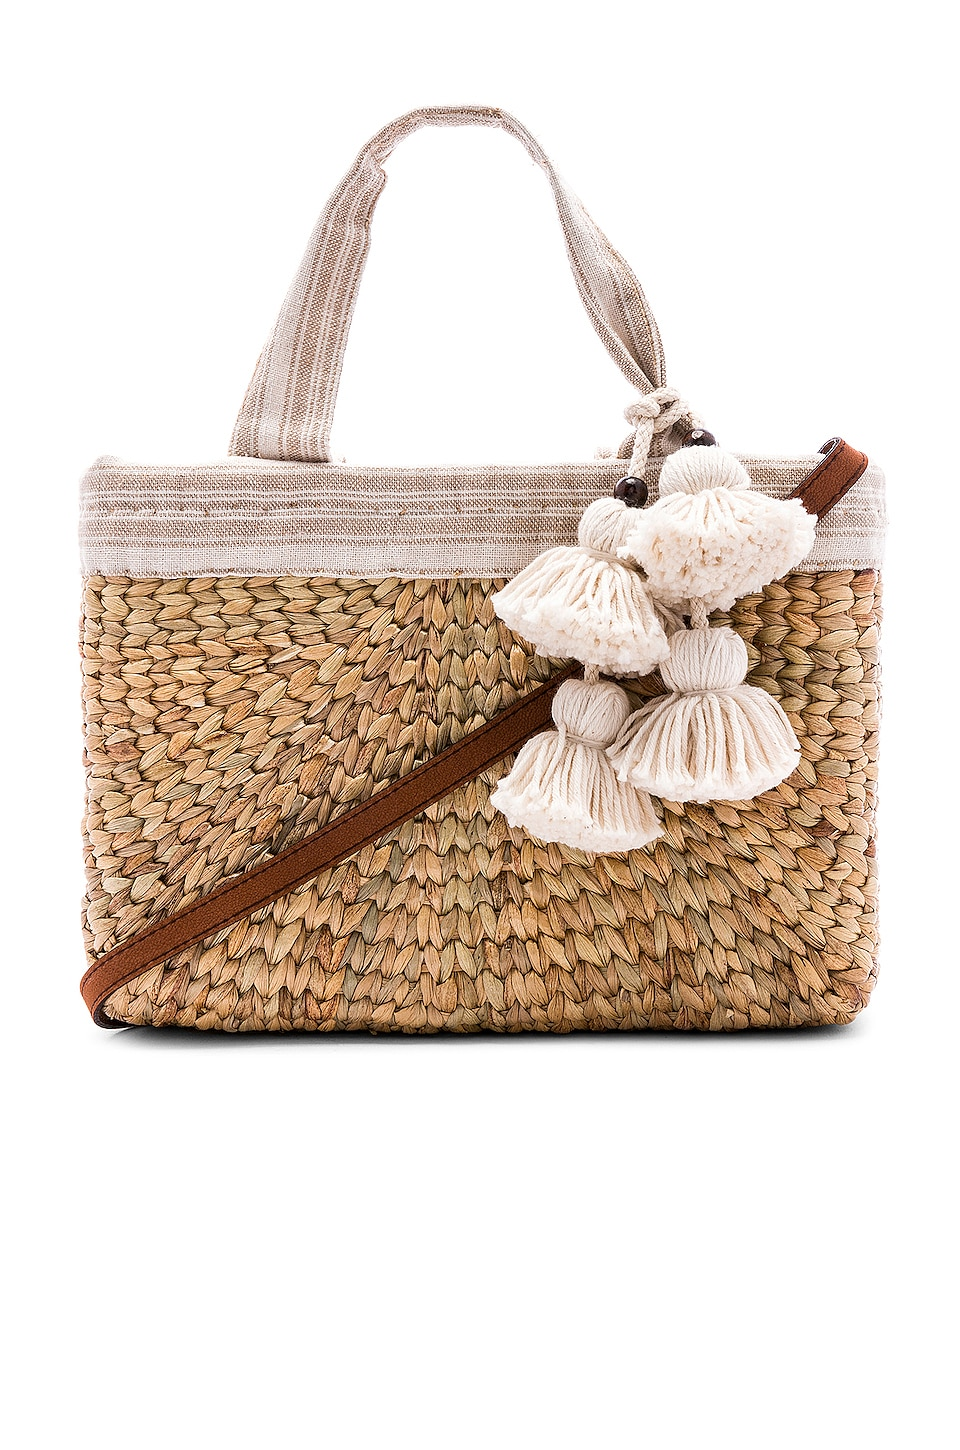 JADEtribe PANIER SABAI MINI SQUARE WITH LEATHER HANDLE